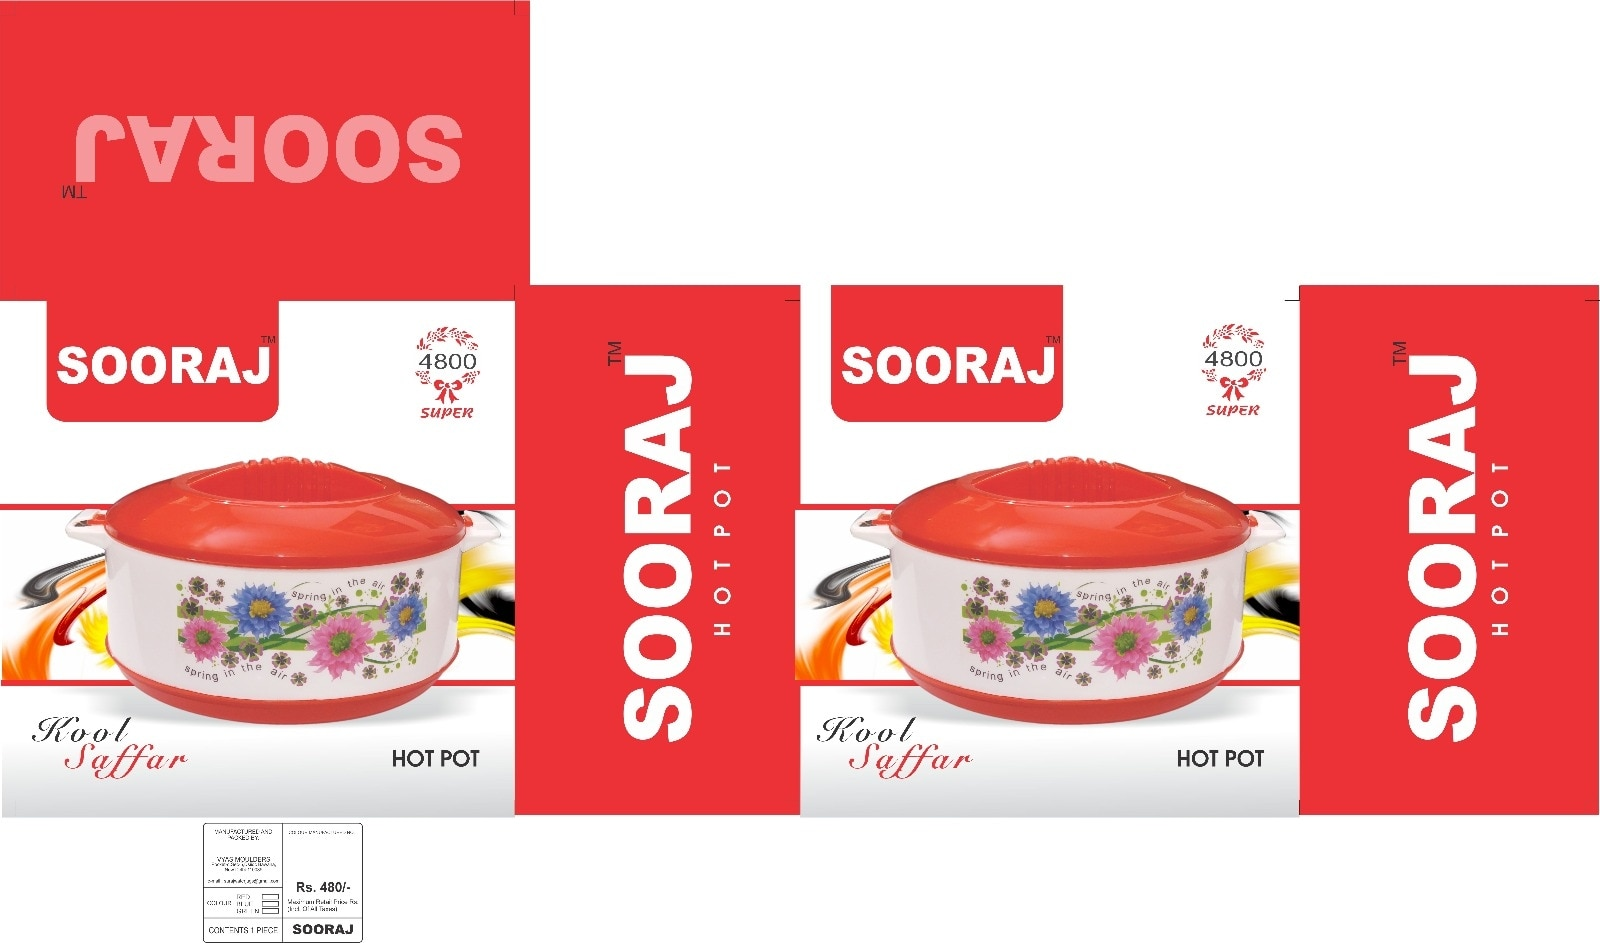 Hot pot box in crockery items ..... aviable all types of boxes in house hold category...